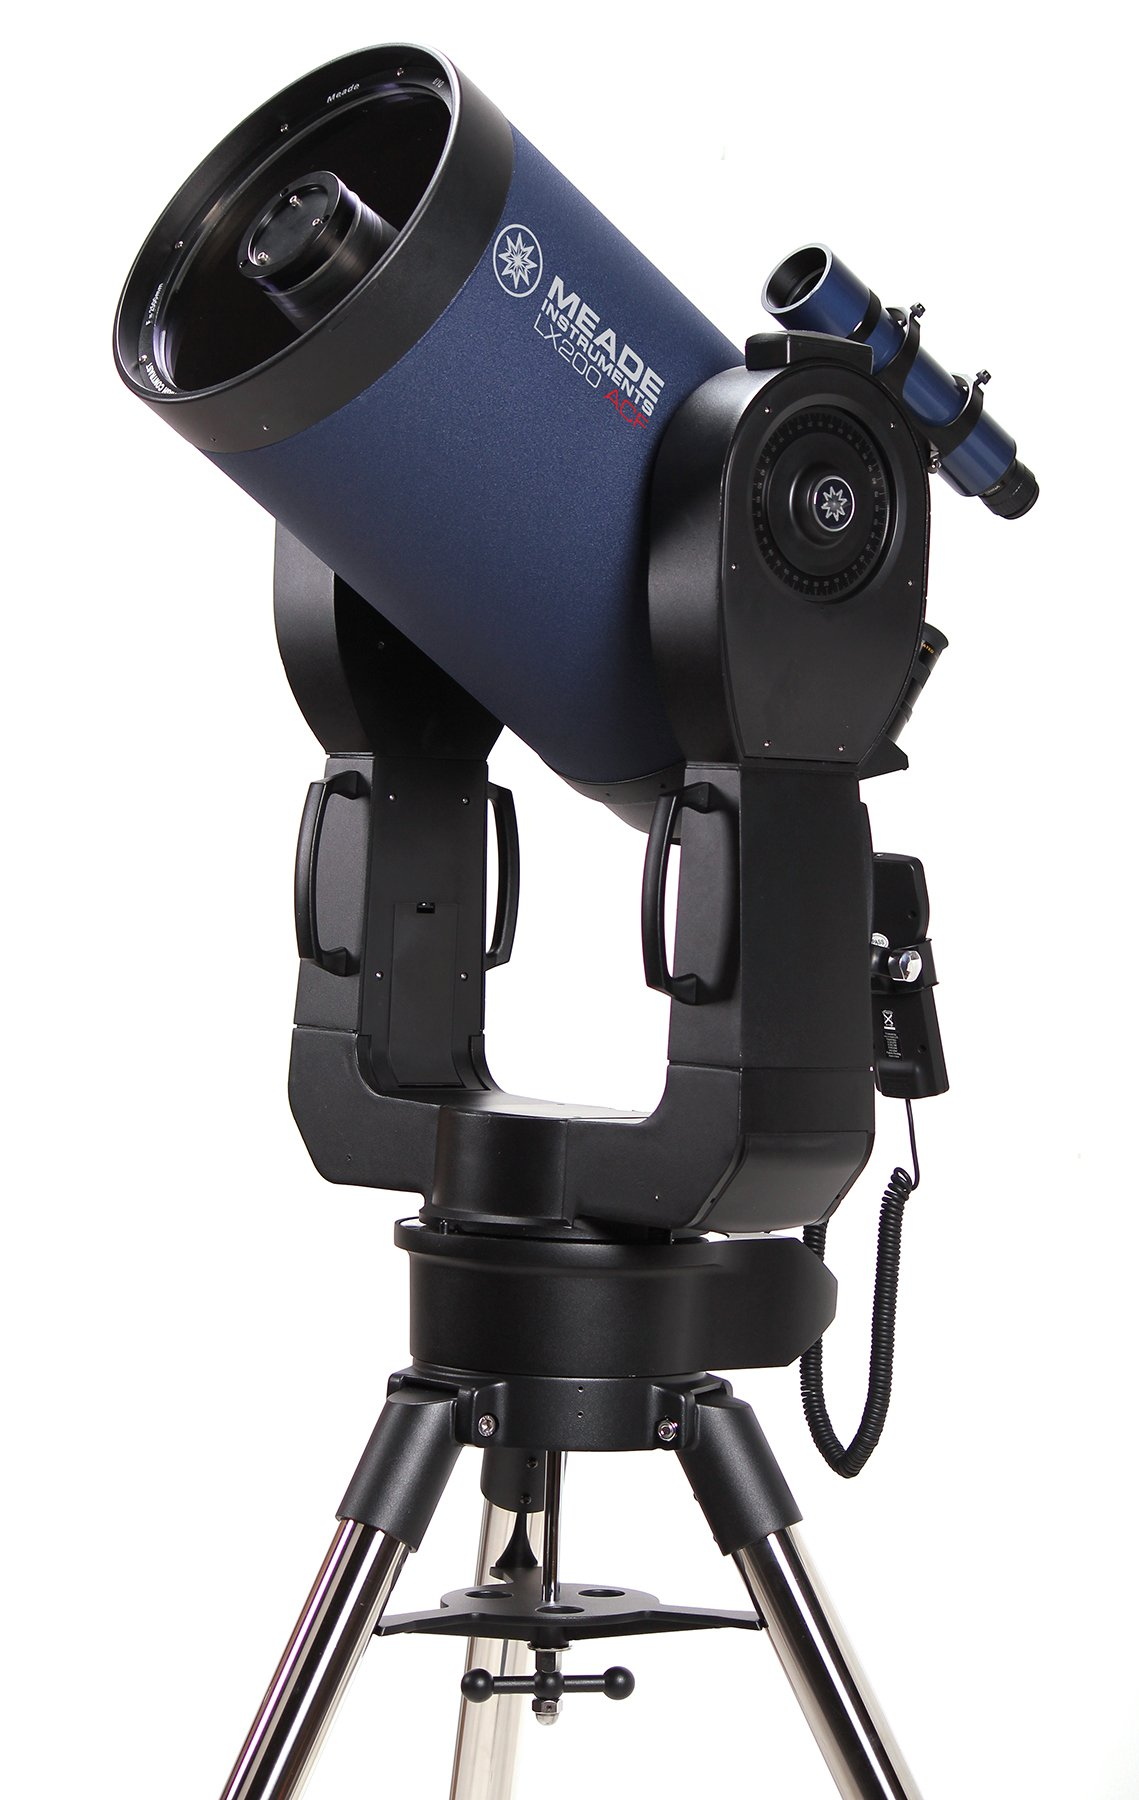 Meade Instruments 1010-60-03  LX200-ACF 10-Inch (f/10) 145K object Database Advanced Coma-Free Telescope with Autostar II Hand Controller by Meade Instruments